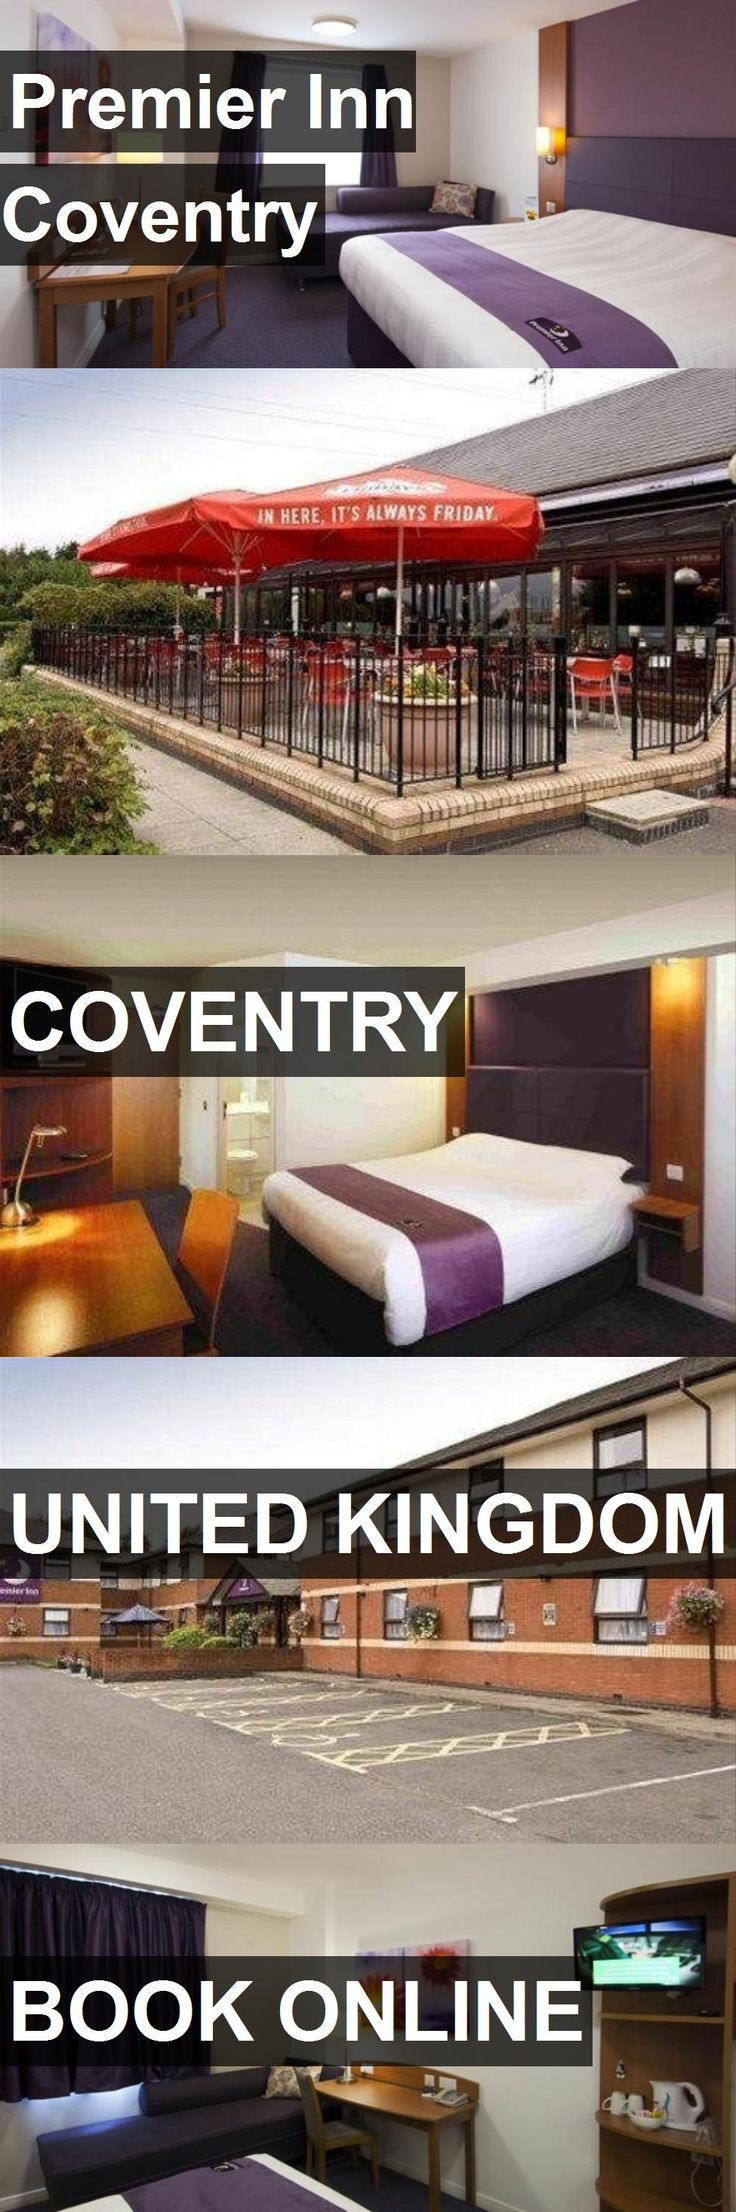 Hotel Premier Inn Coventry in Coventry, United Kingdom. For more information, photos, reviews and best prices please follow the link. #UnitedKingdom #Coventry #hotel #travel #vacation